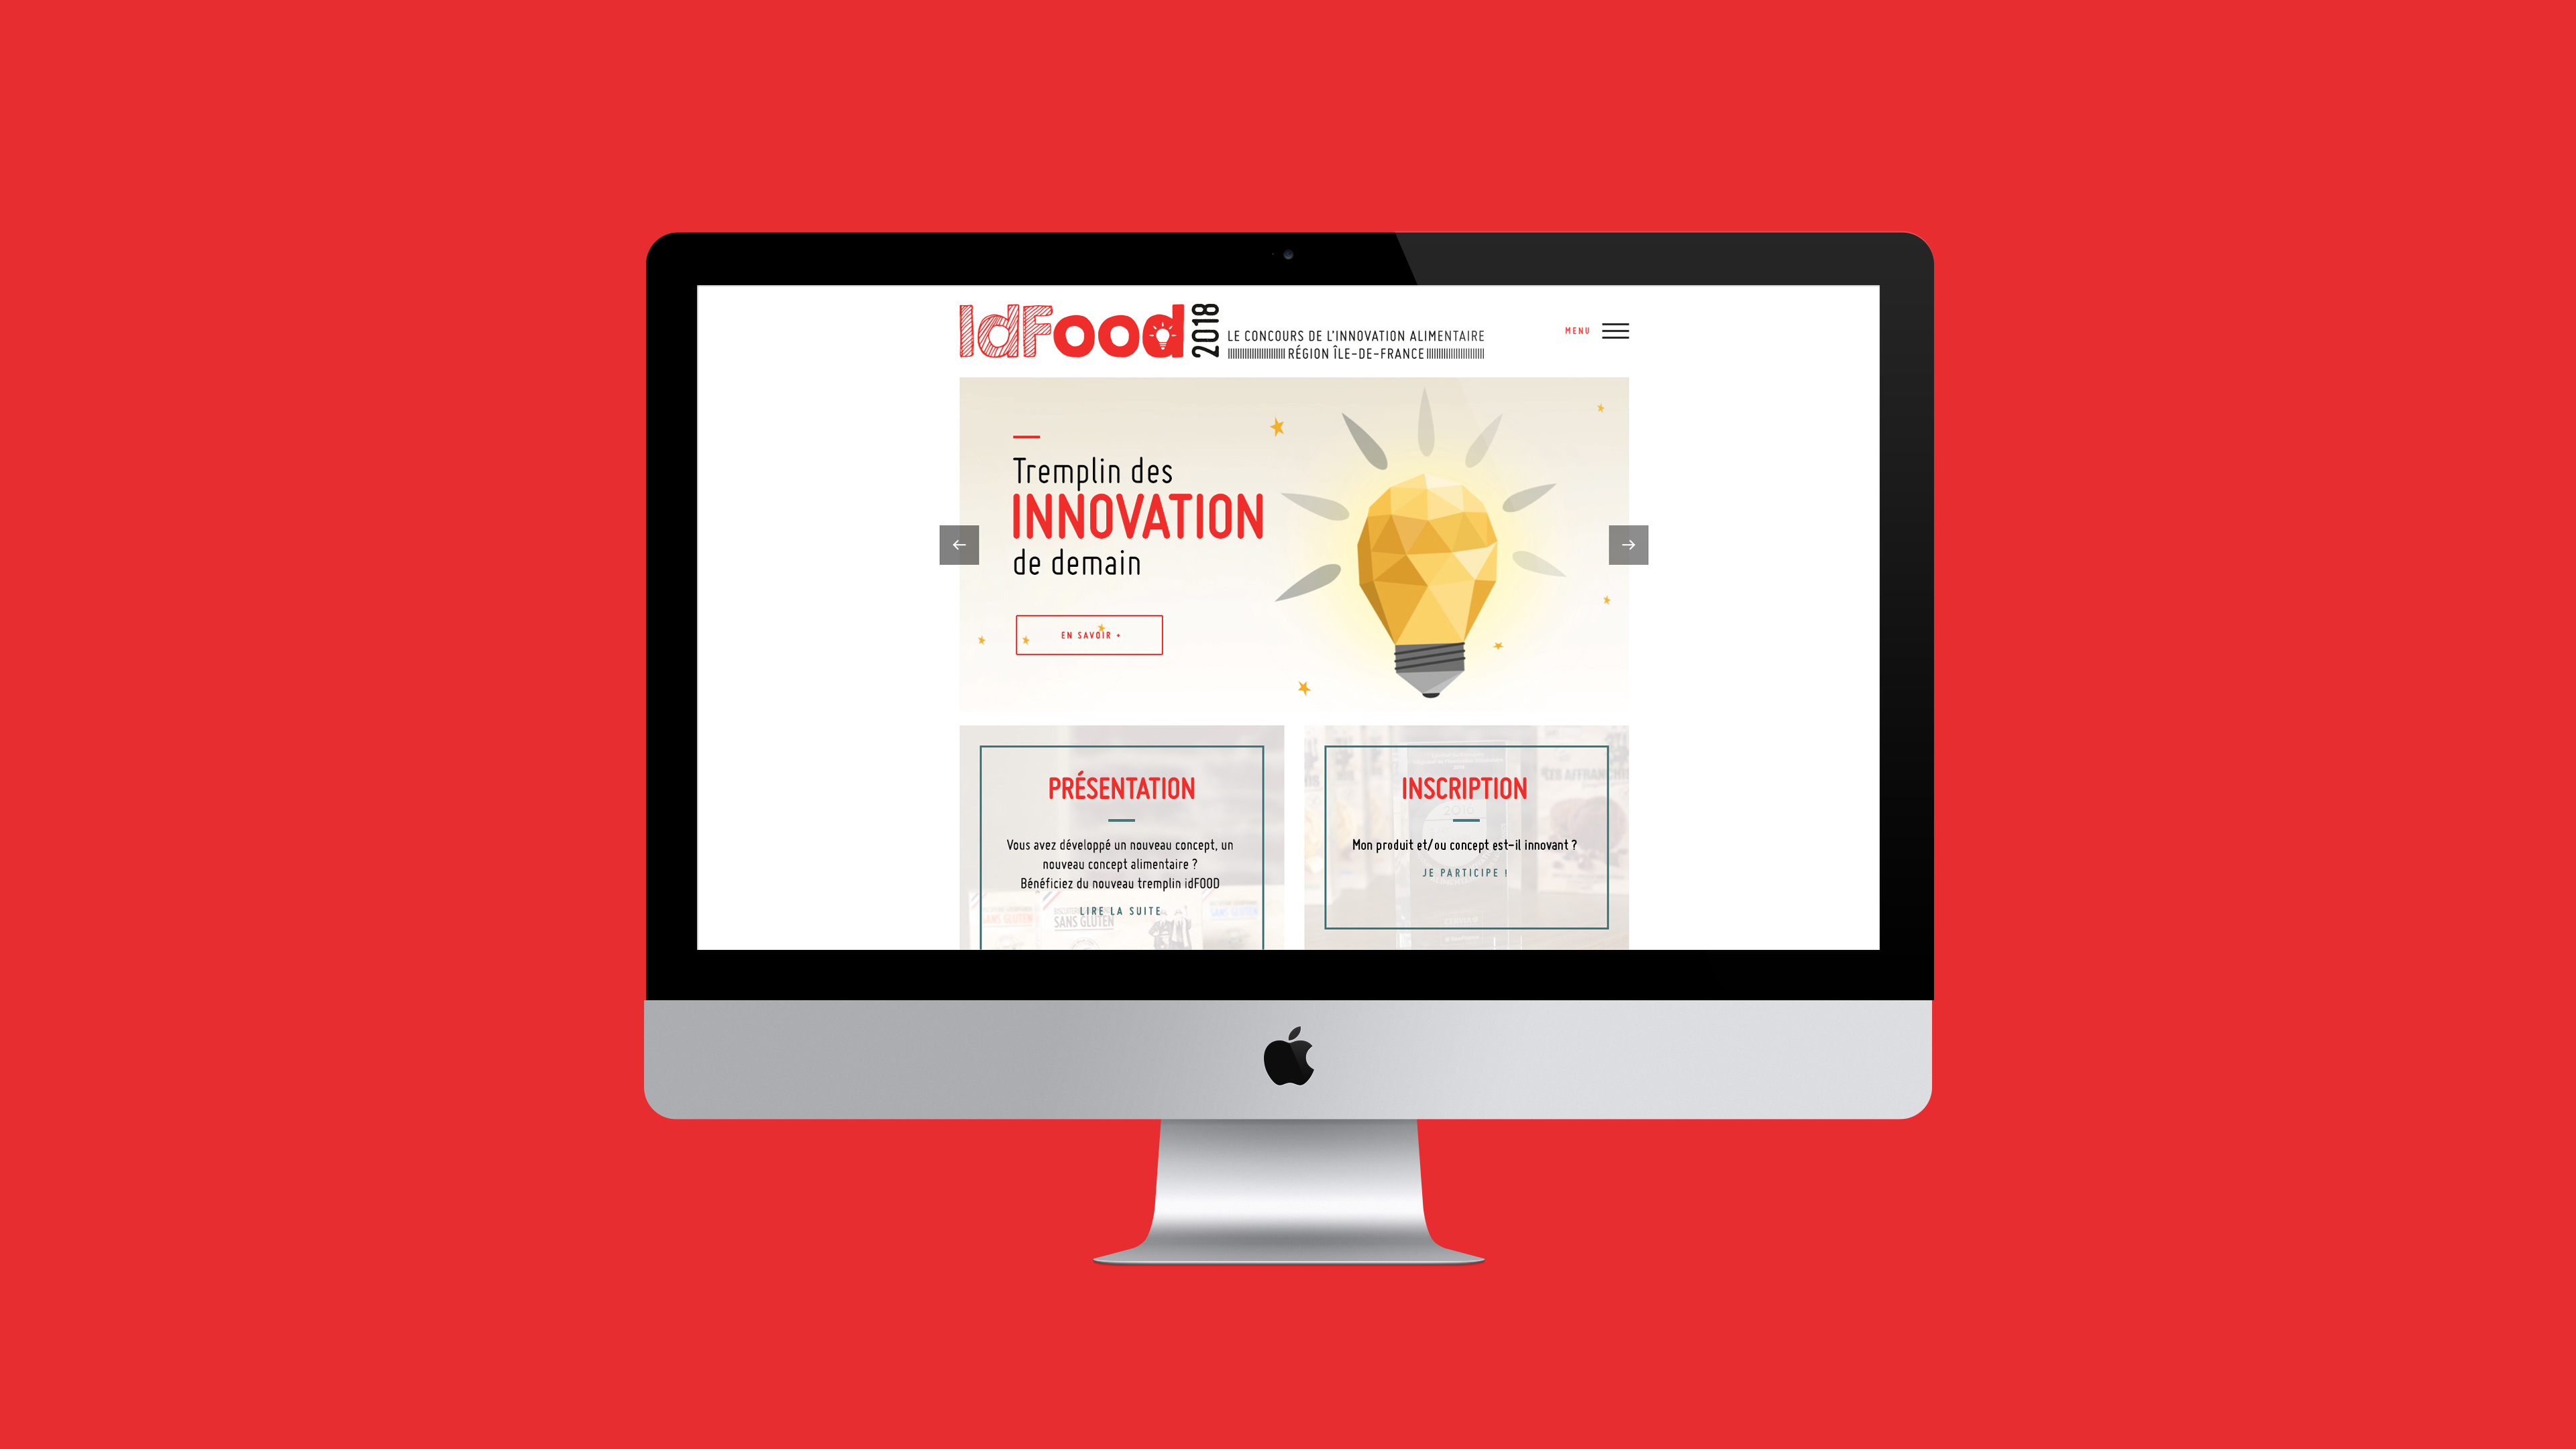 Site concours idfood accueil